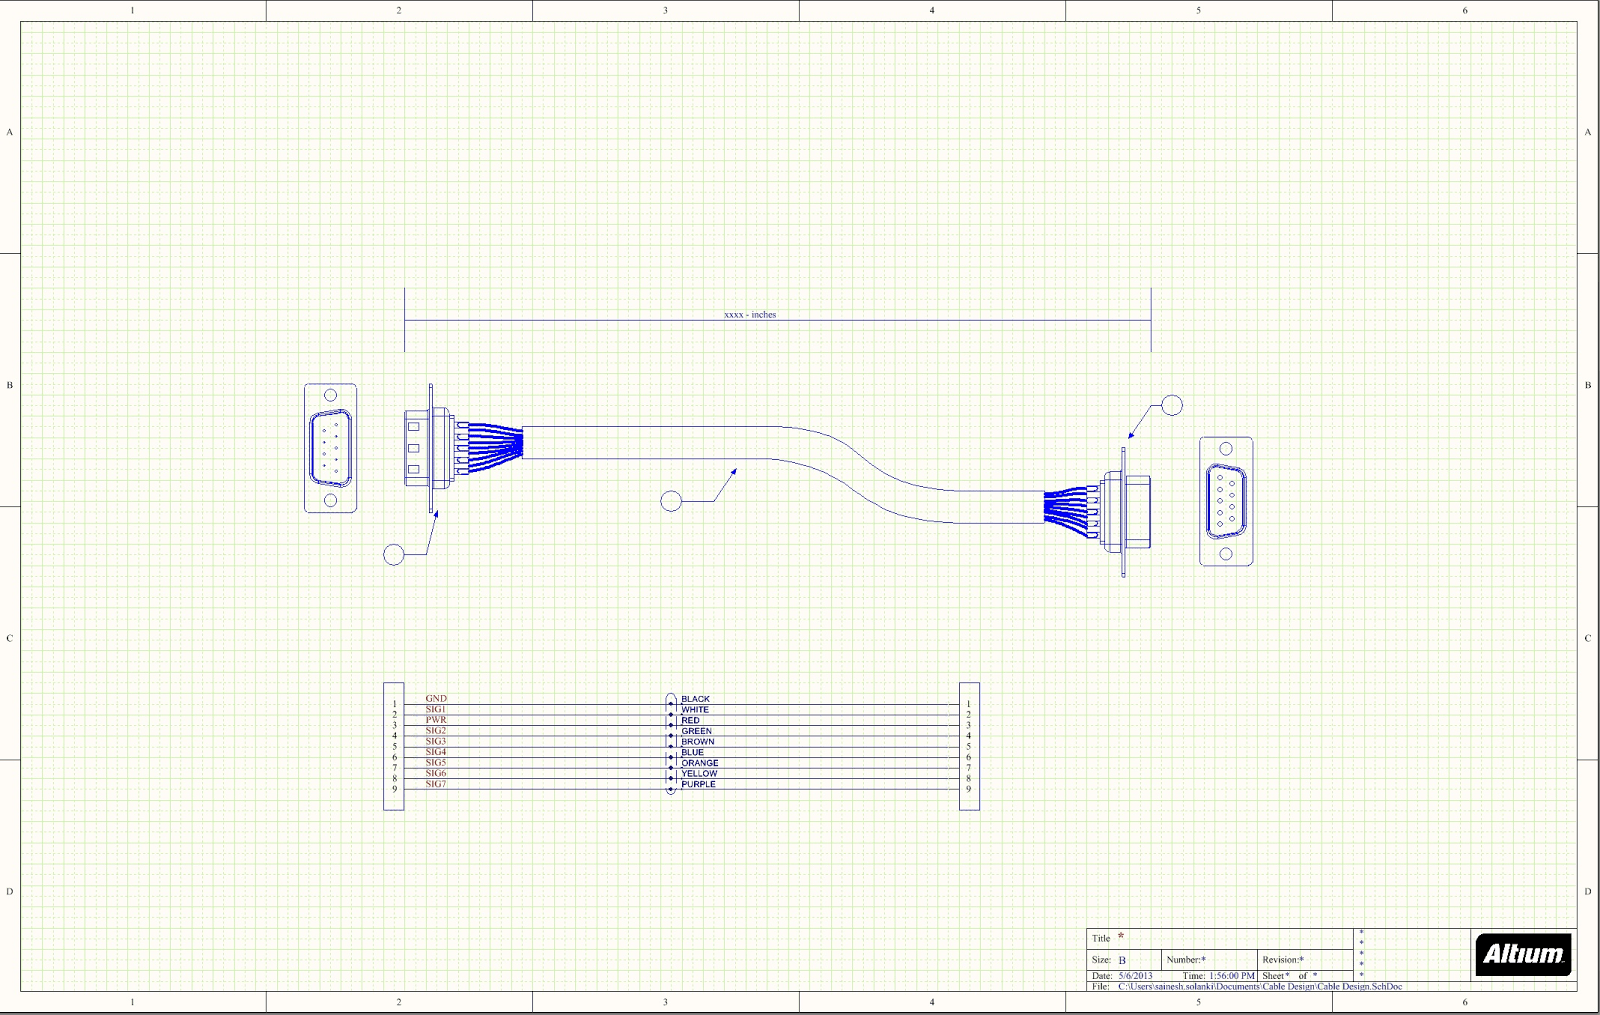 Cable Assembly Drawings for PCB Cable Assemblies: Part 1